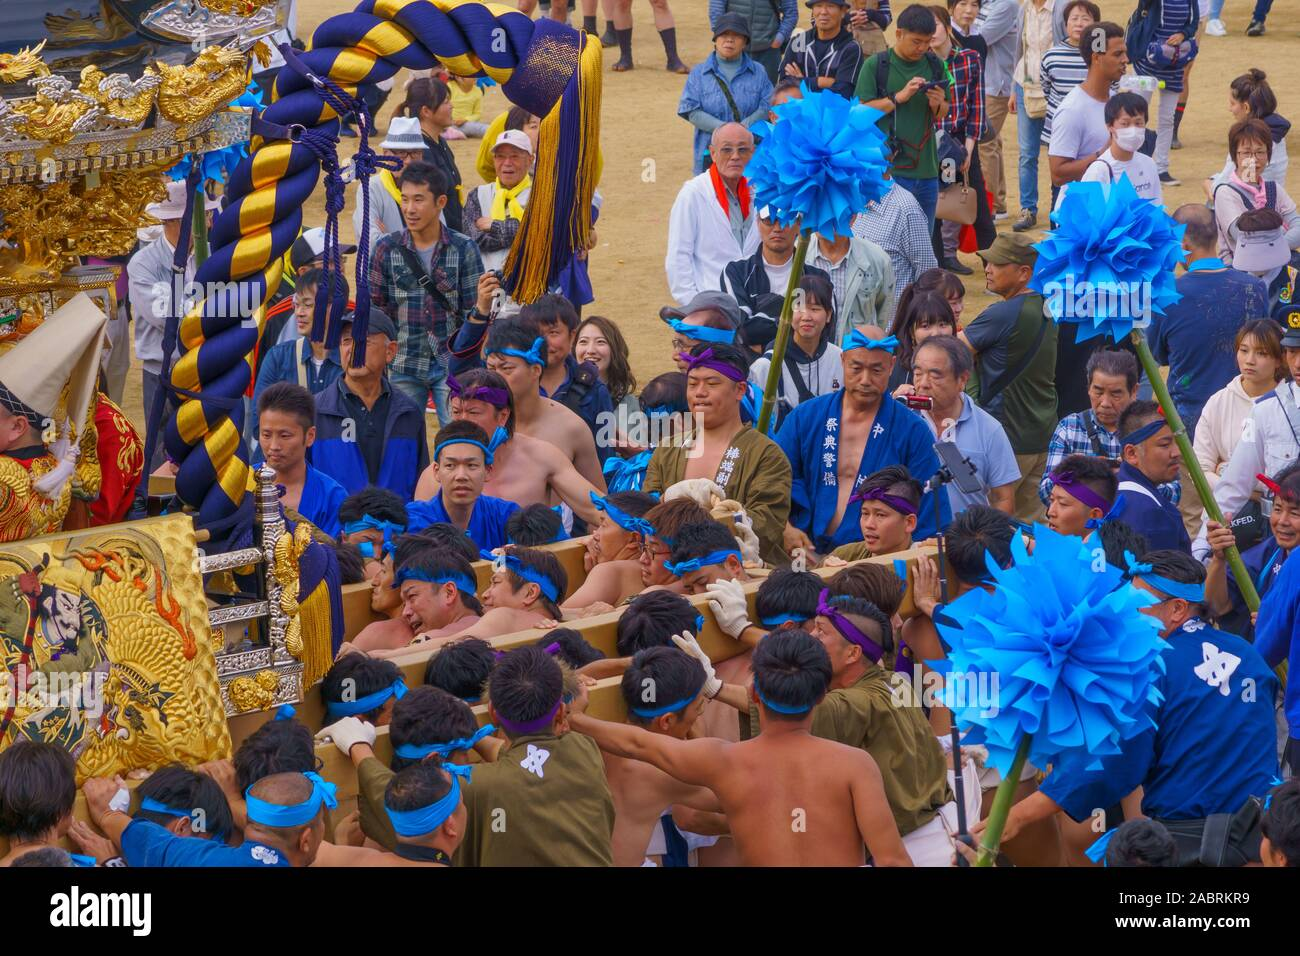 Himeji, Japan - October 15, 2019: Portable shrine carried by men in traditional dressing, and crowd. Part of the Nada no Kenka Festival, in Himeji, Ja Stock Photo